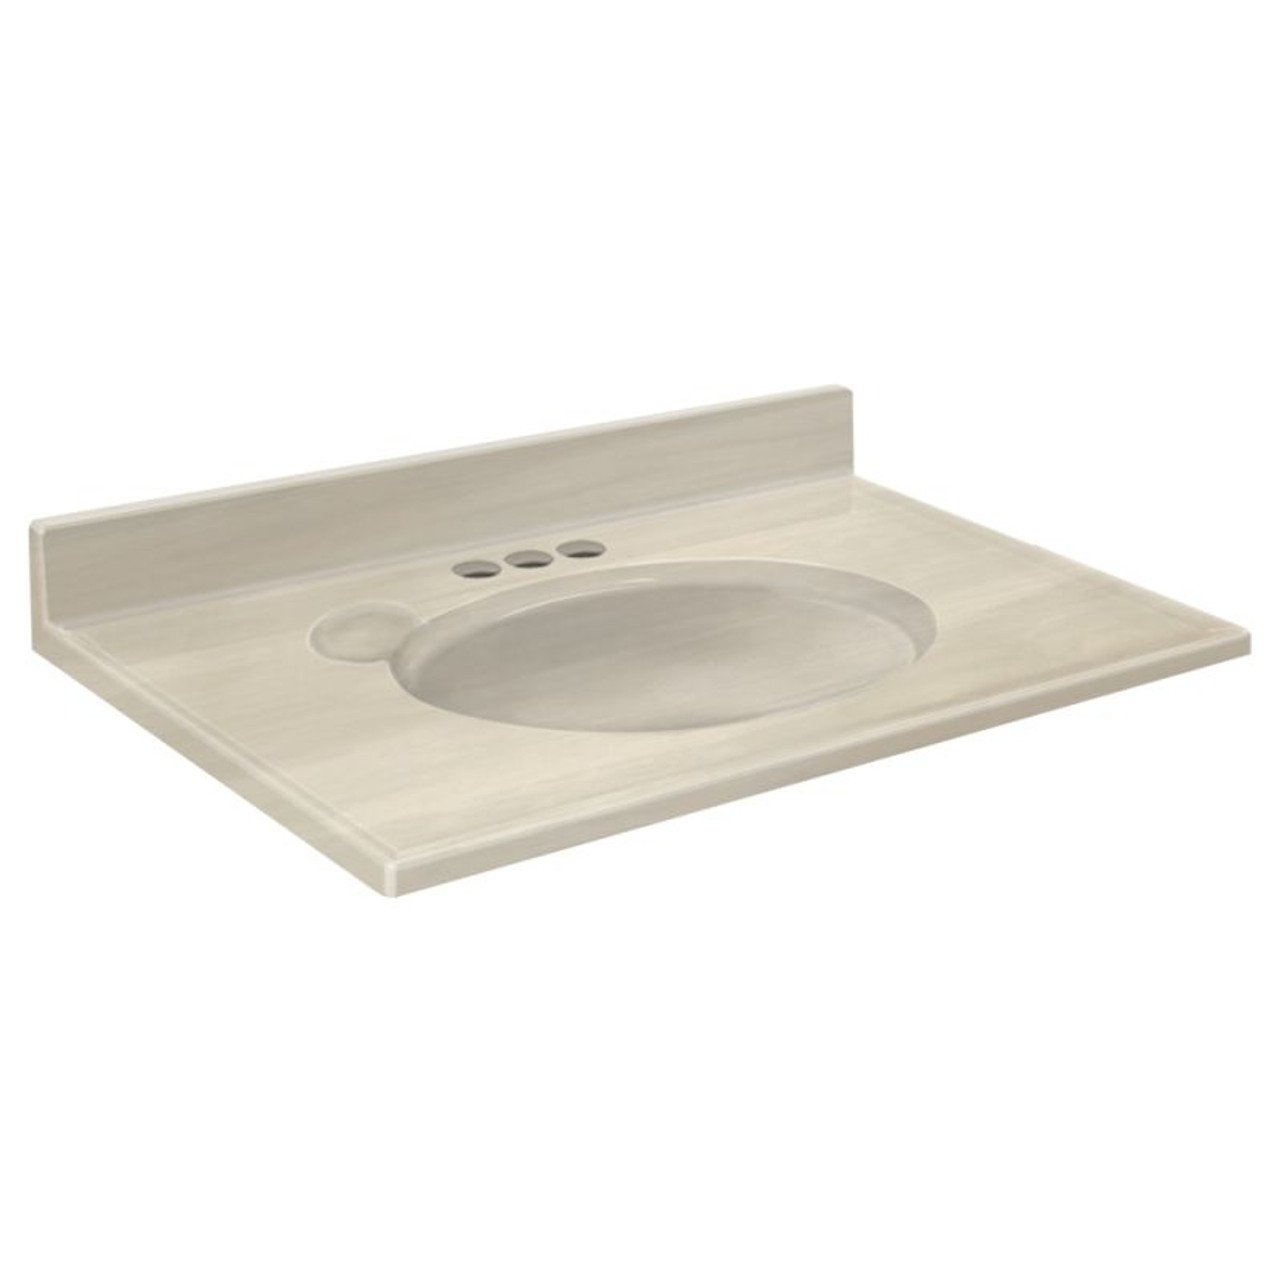 Transolid Cultured Marble 37 In X 19 In Vanity Top In White On Bone 1409 7322 Online Bath1 Com